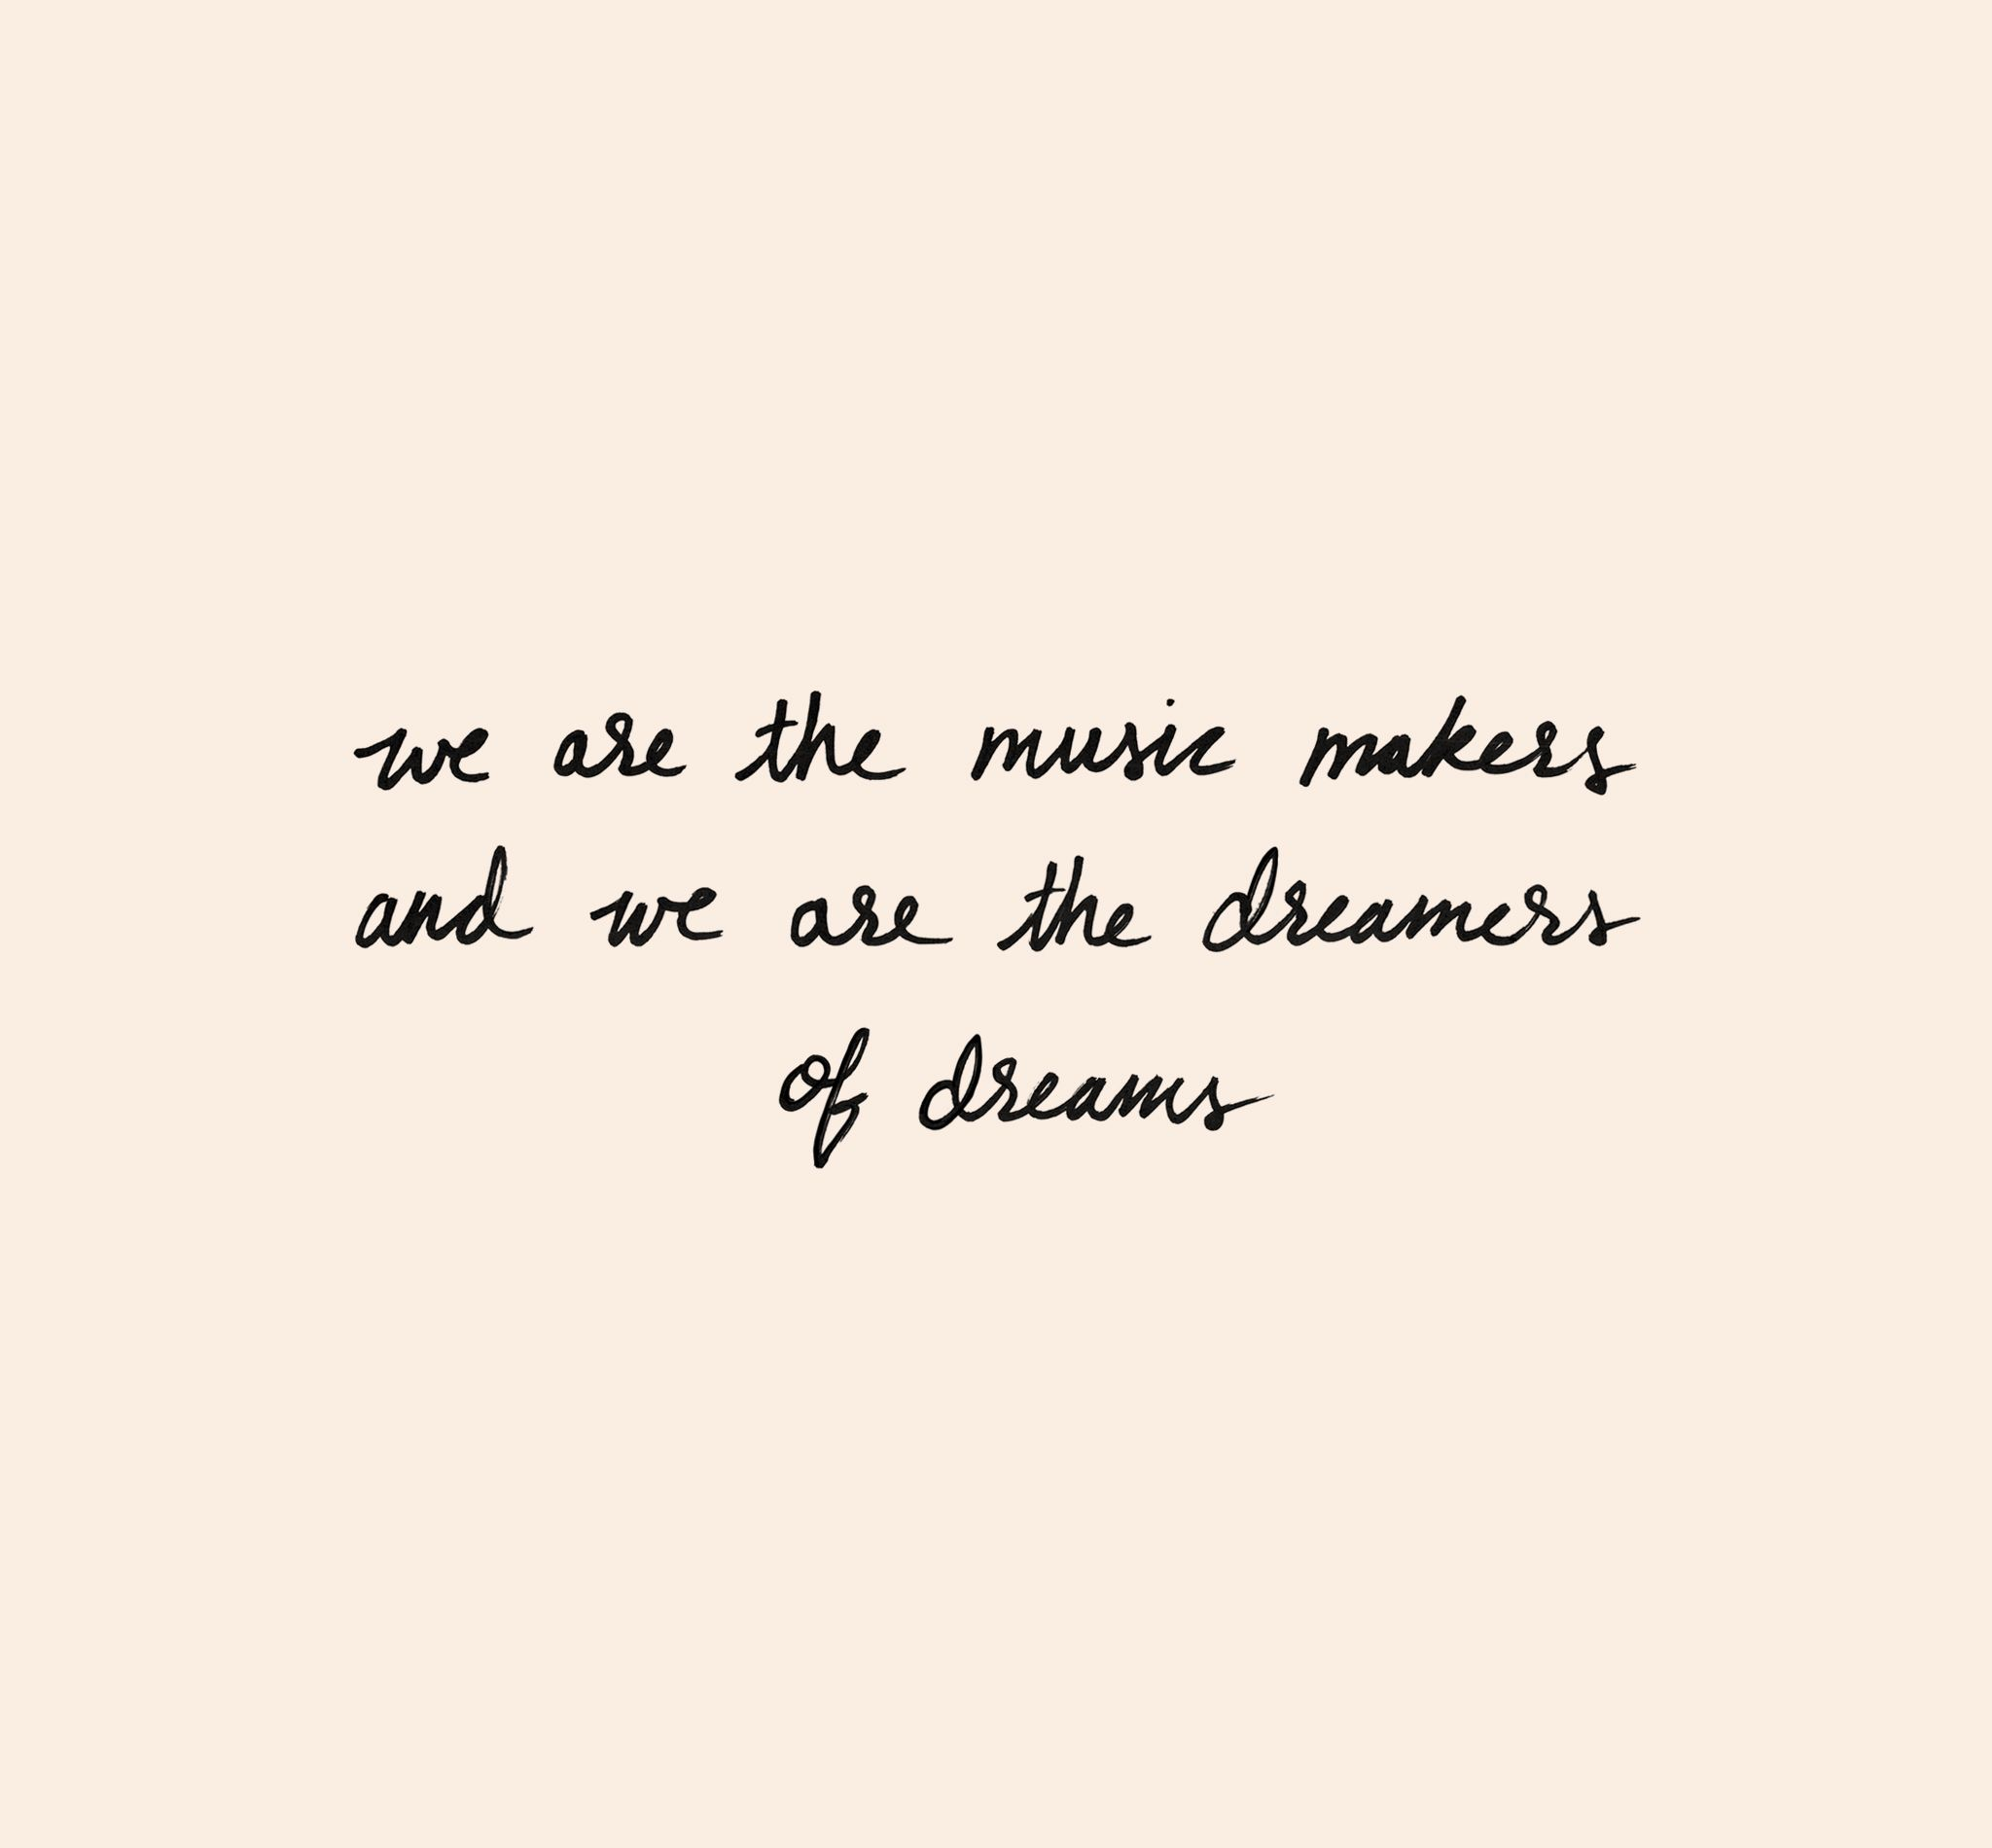 We are the music makers and we are the dreamers of dreams ...